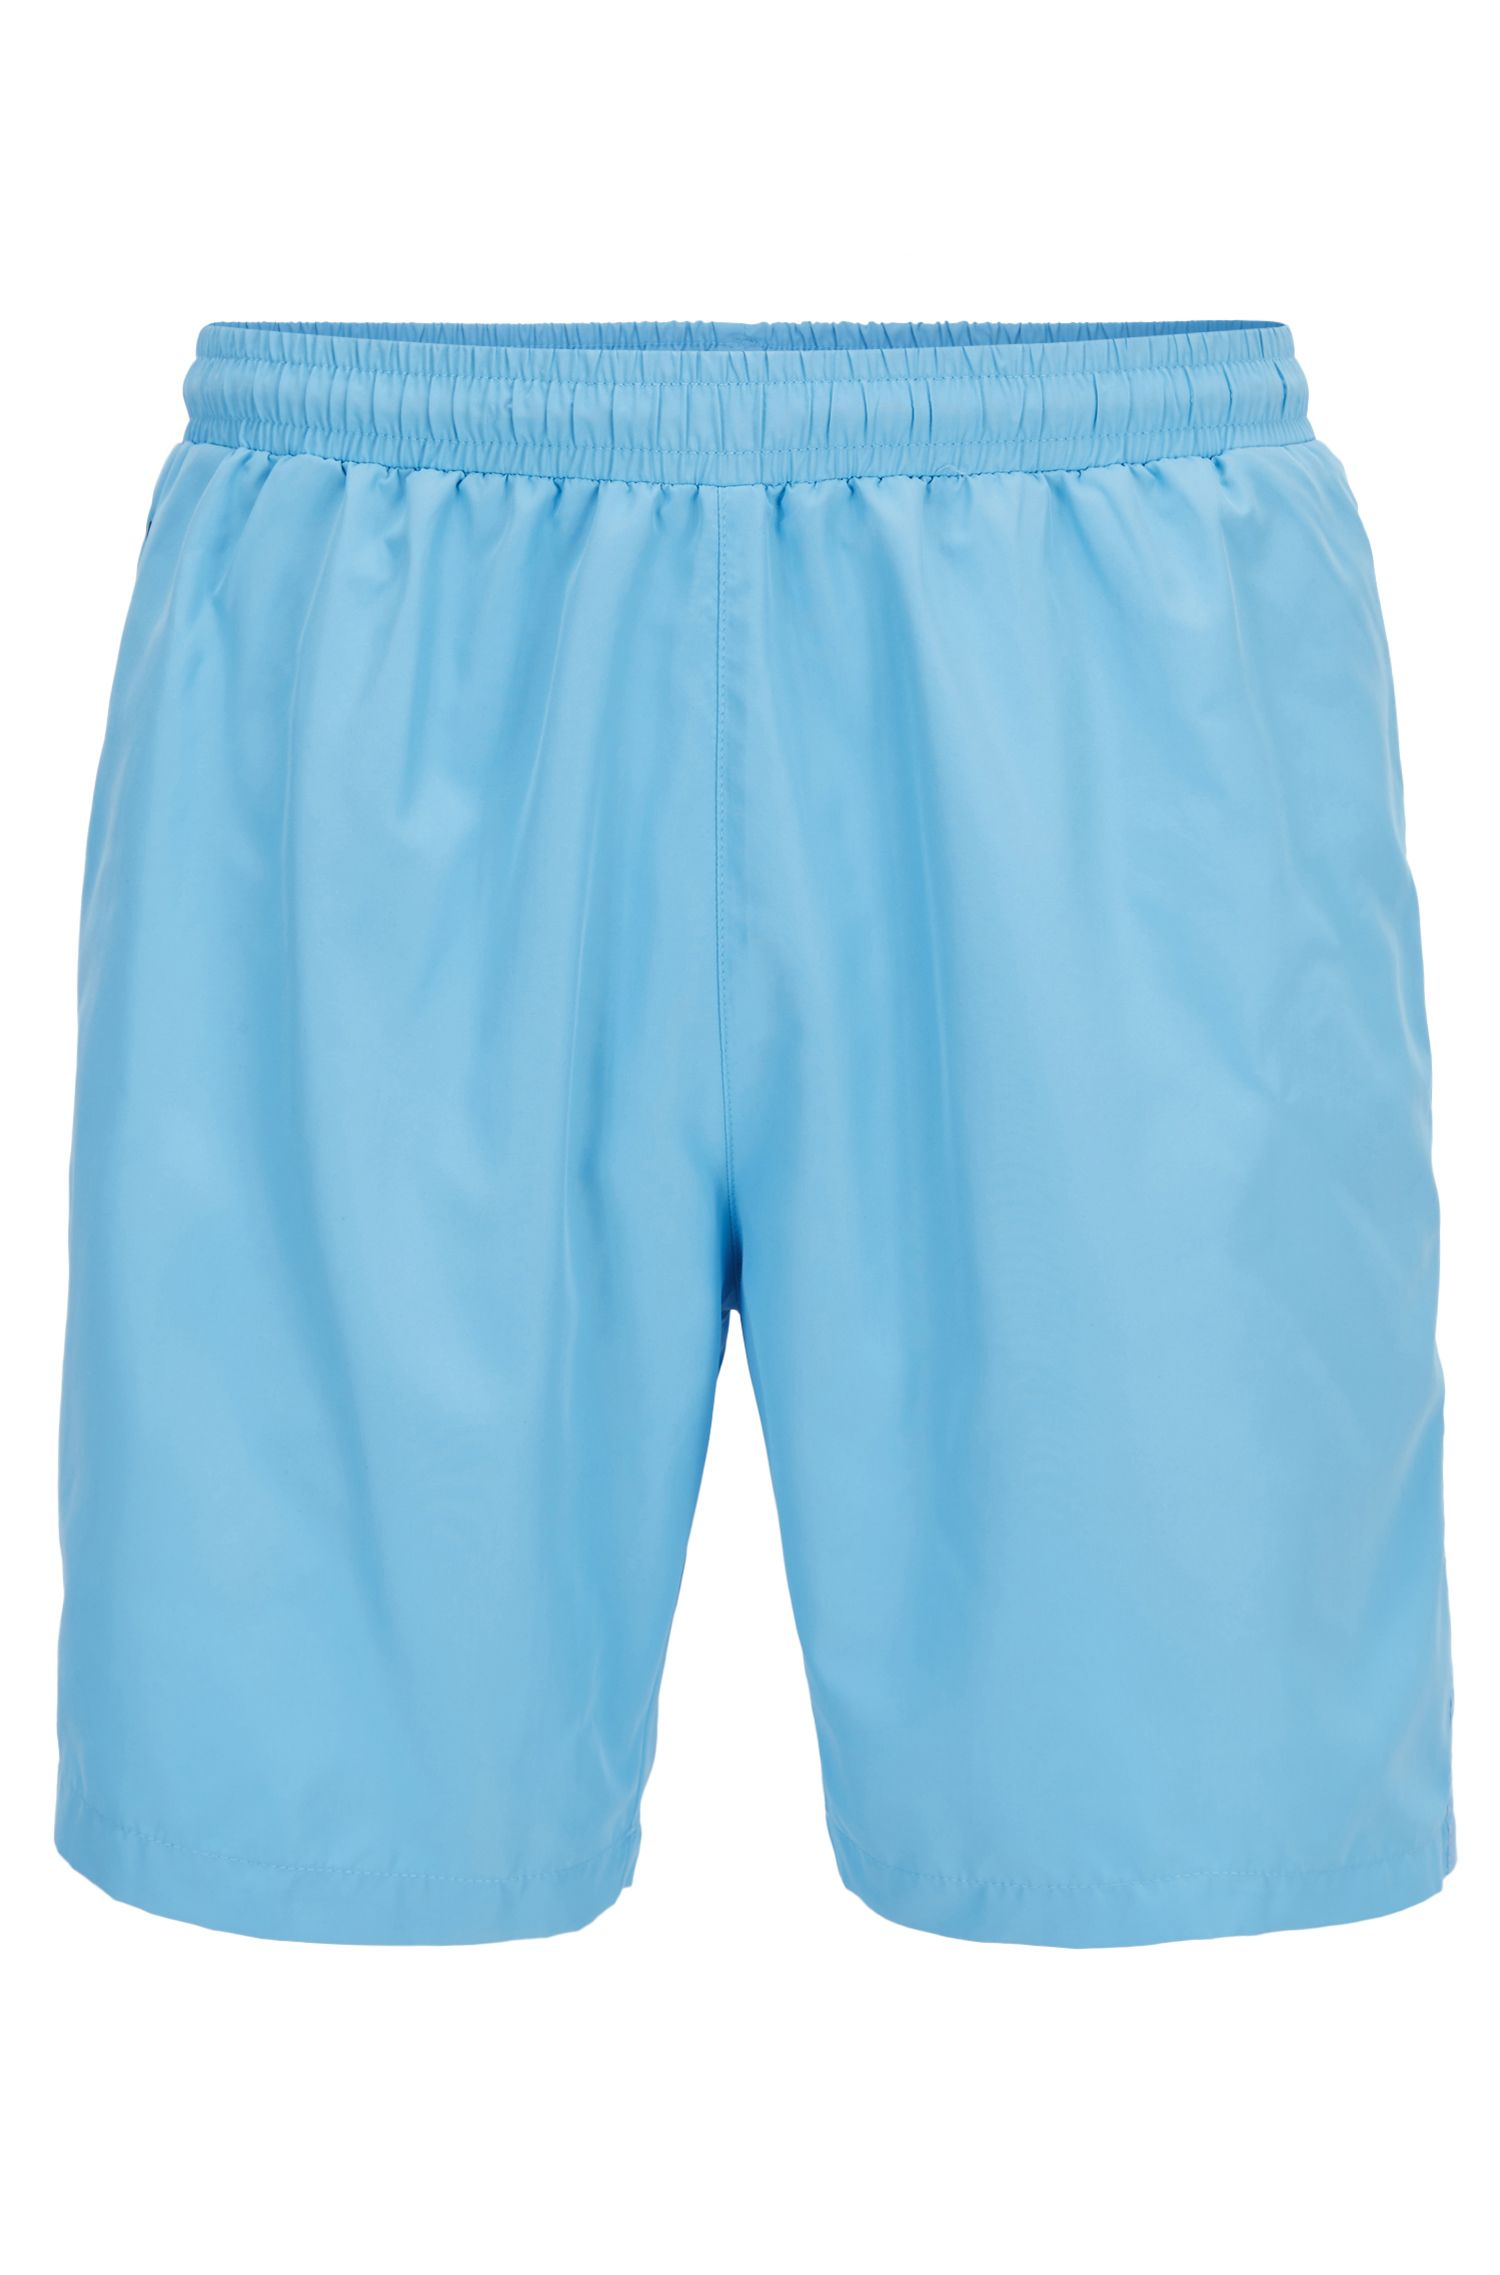 Swim shorts in quick-drying technical fabric